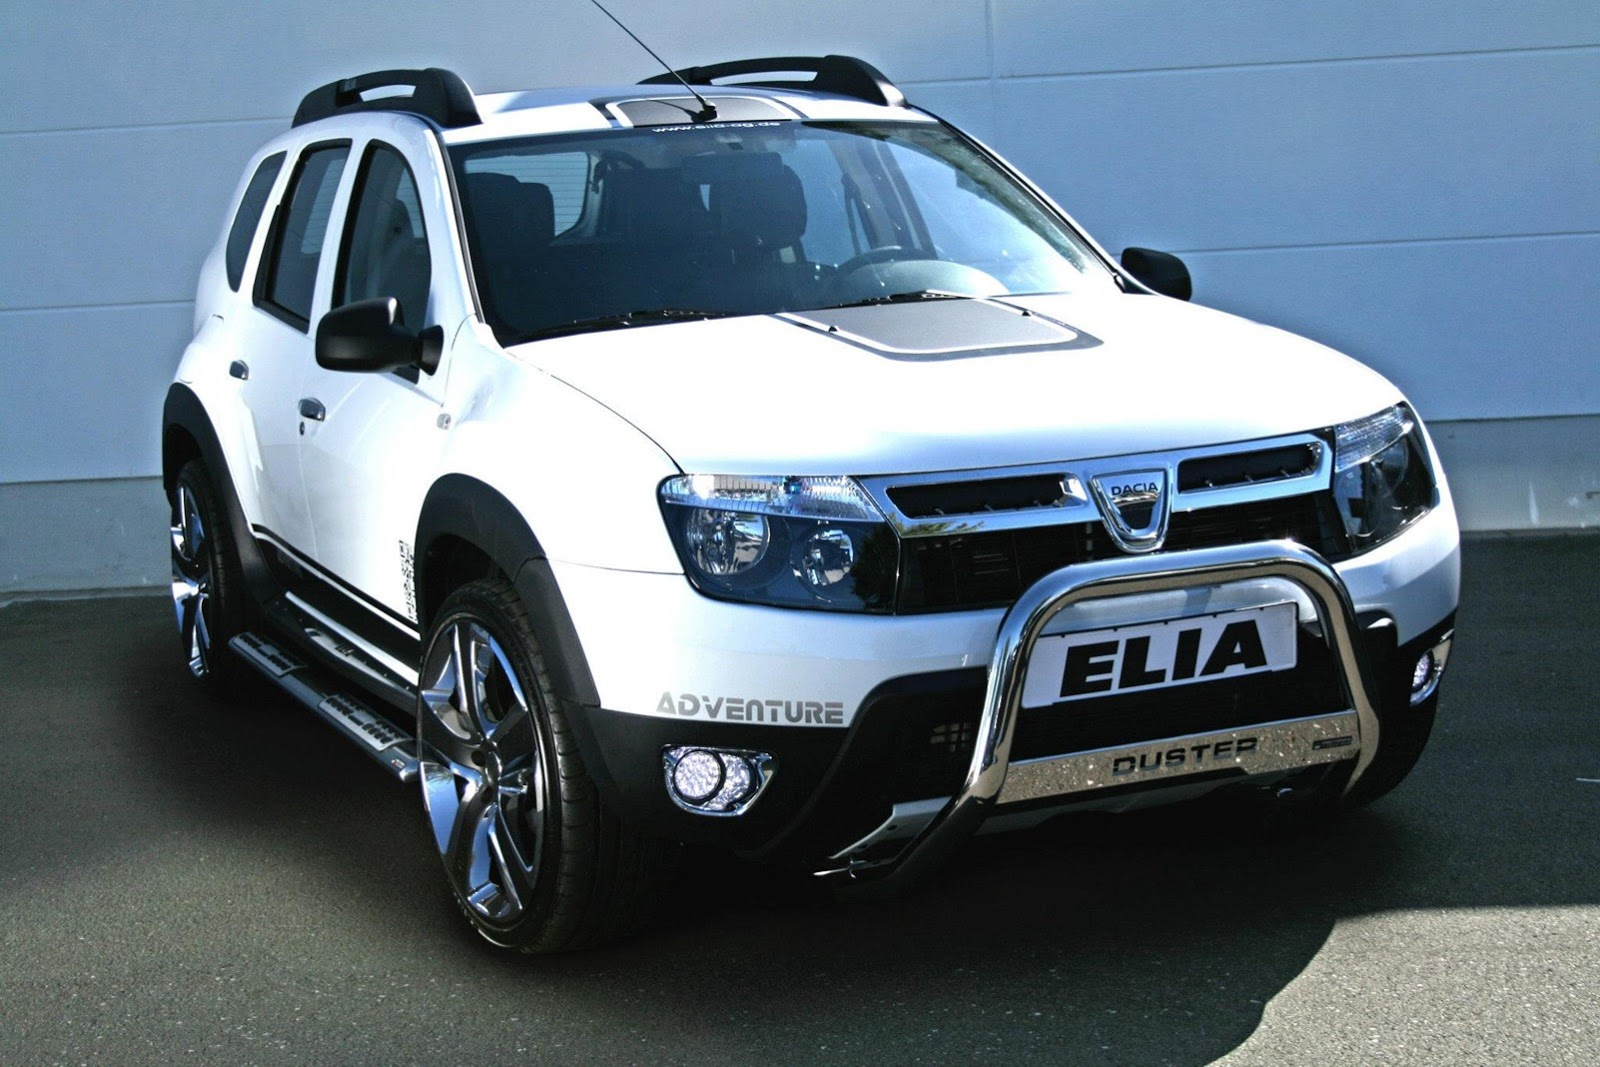 Dacia Duster Gets Stormtrooper Makeover From Tuner Elia